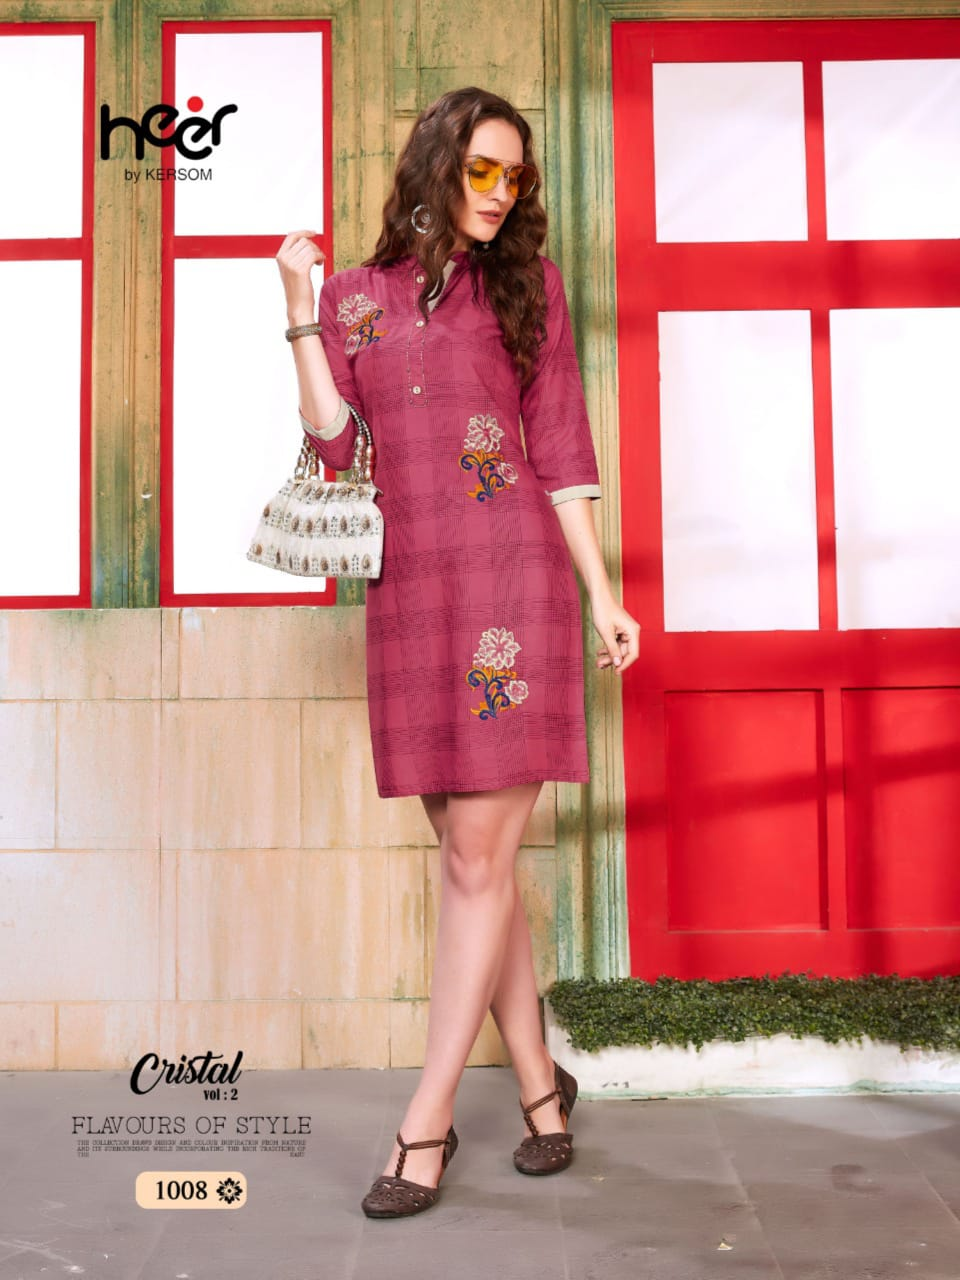 Heer Cristal 2 collection 9